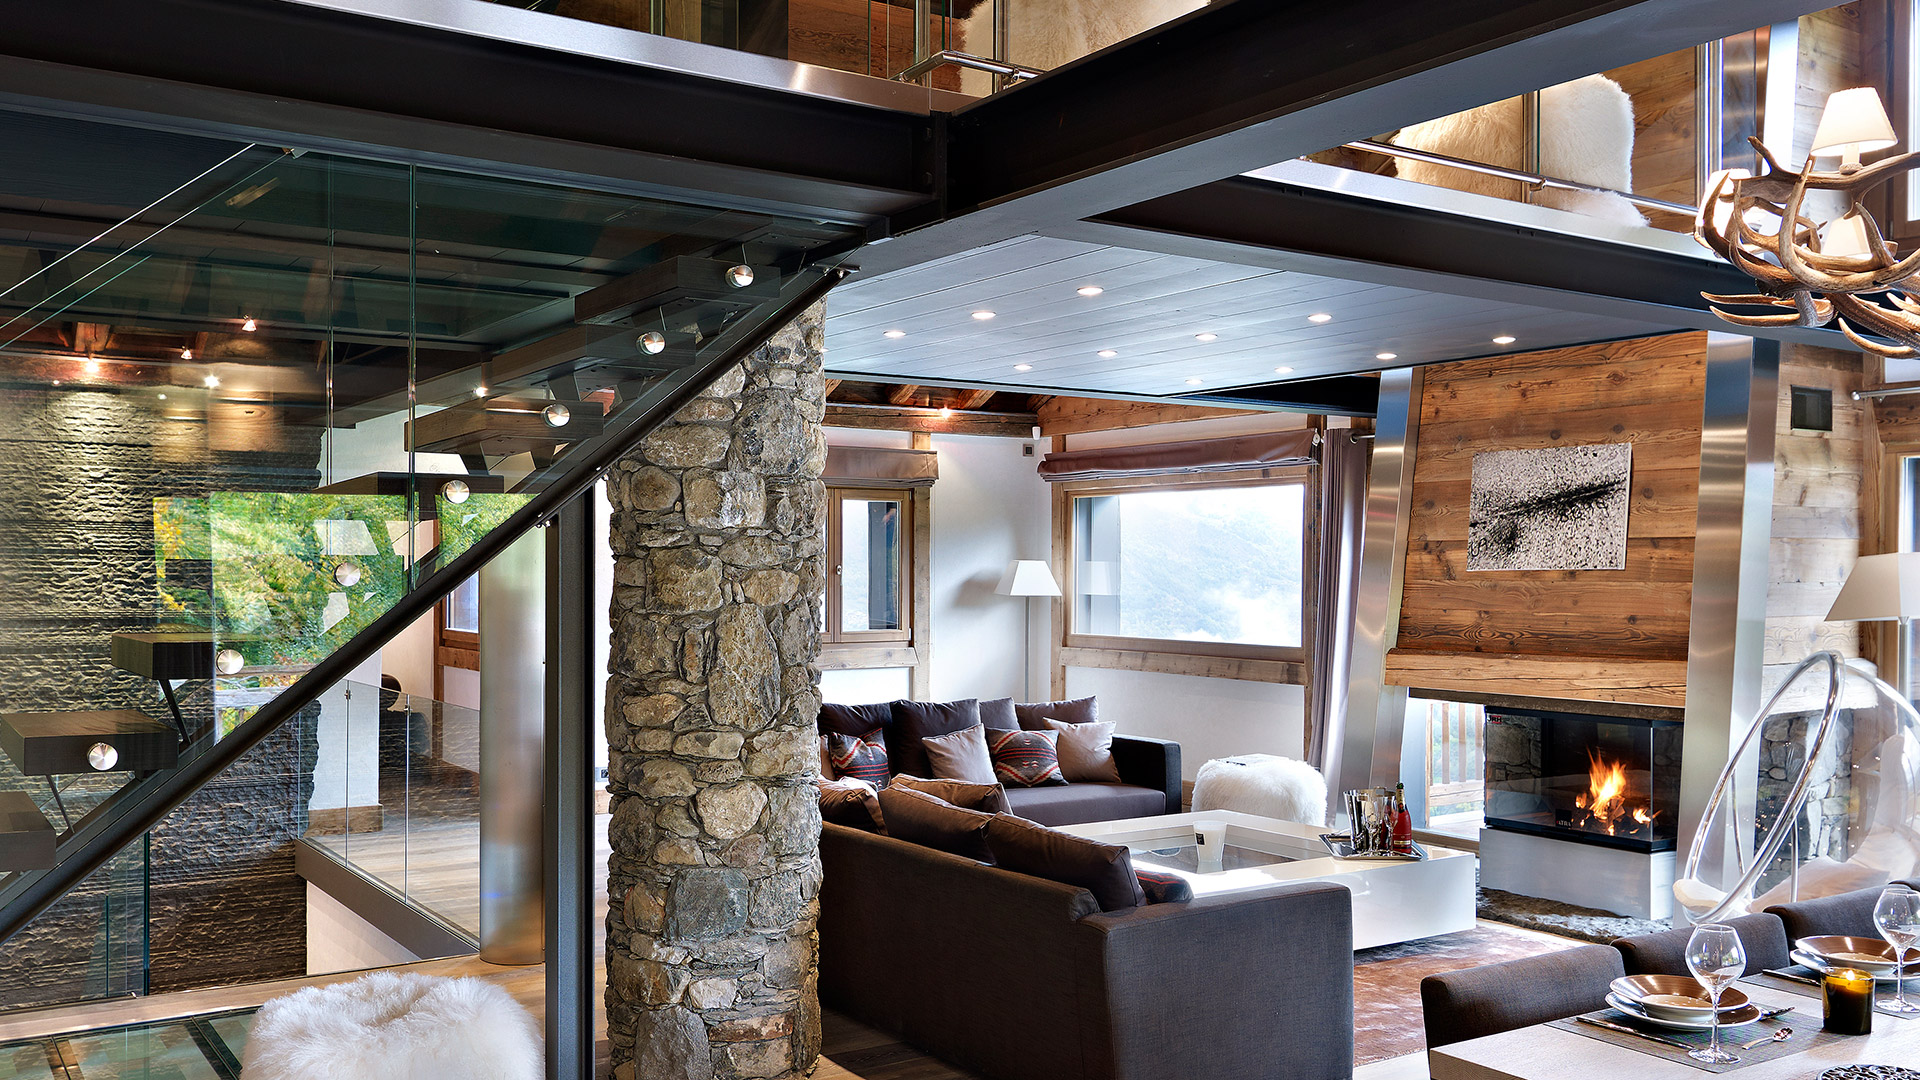 Chalet Olympia Chalet, France